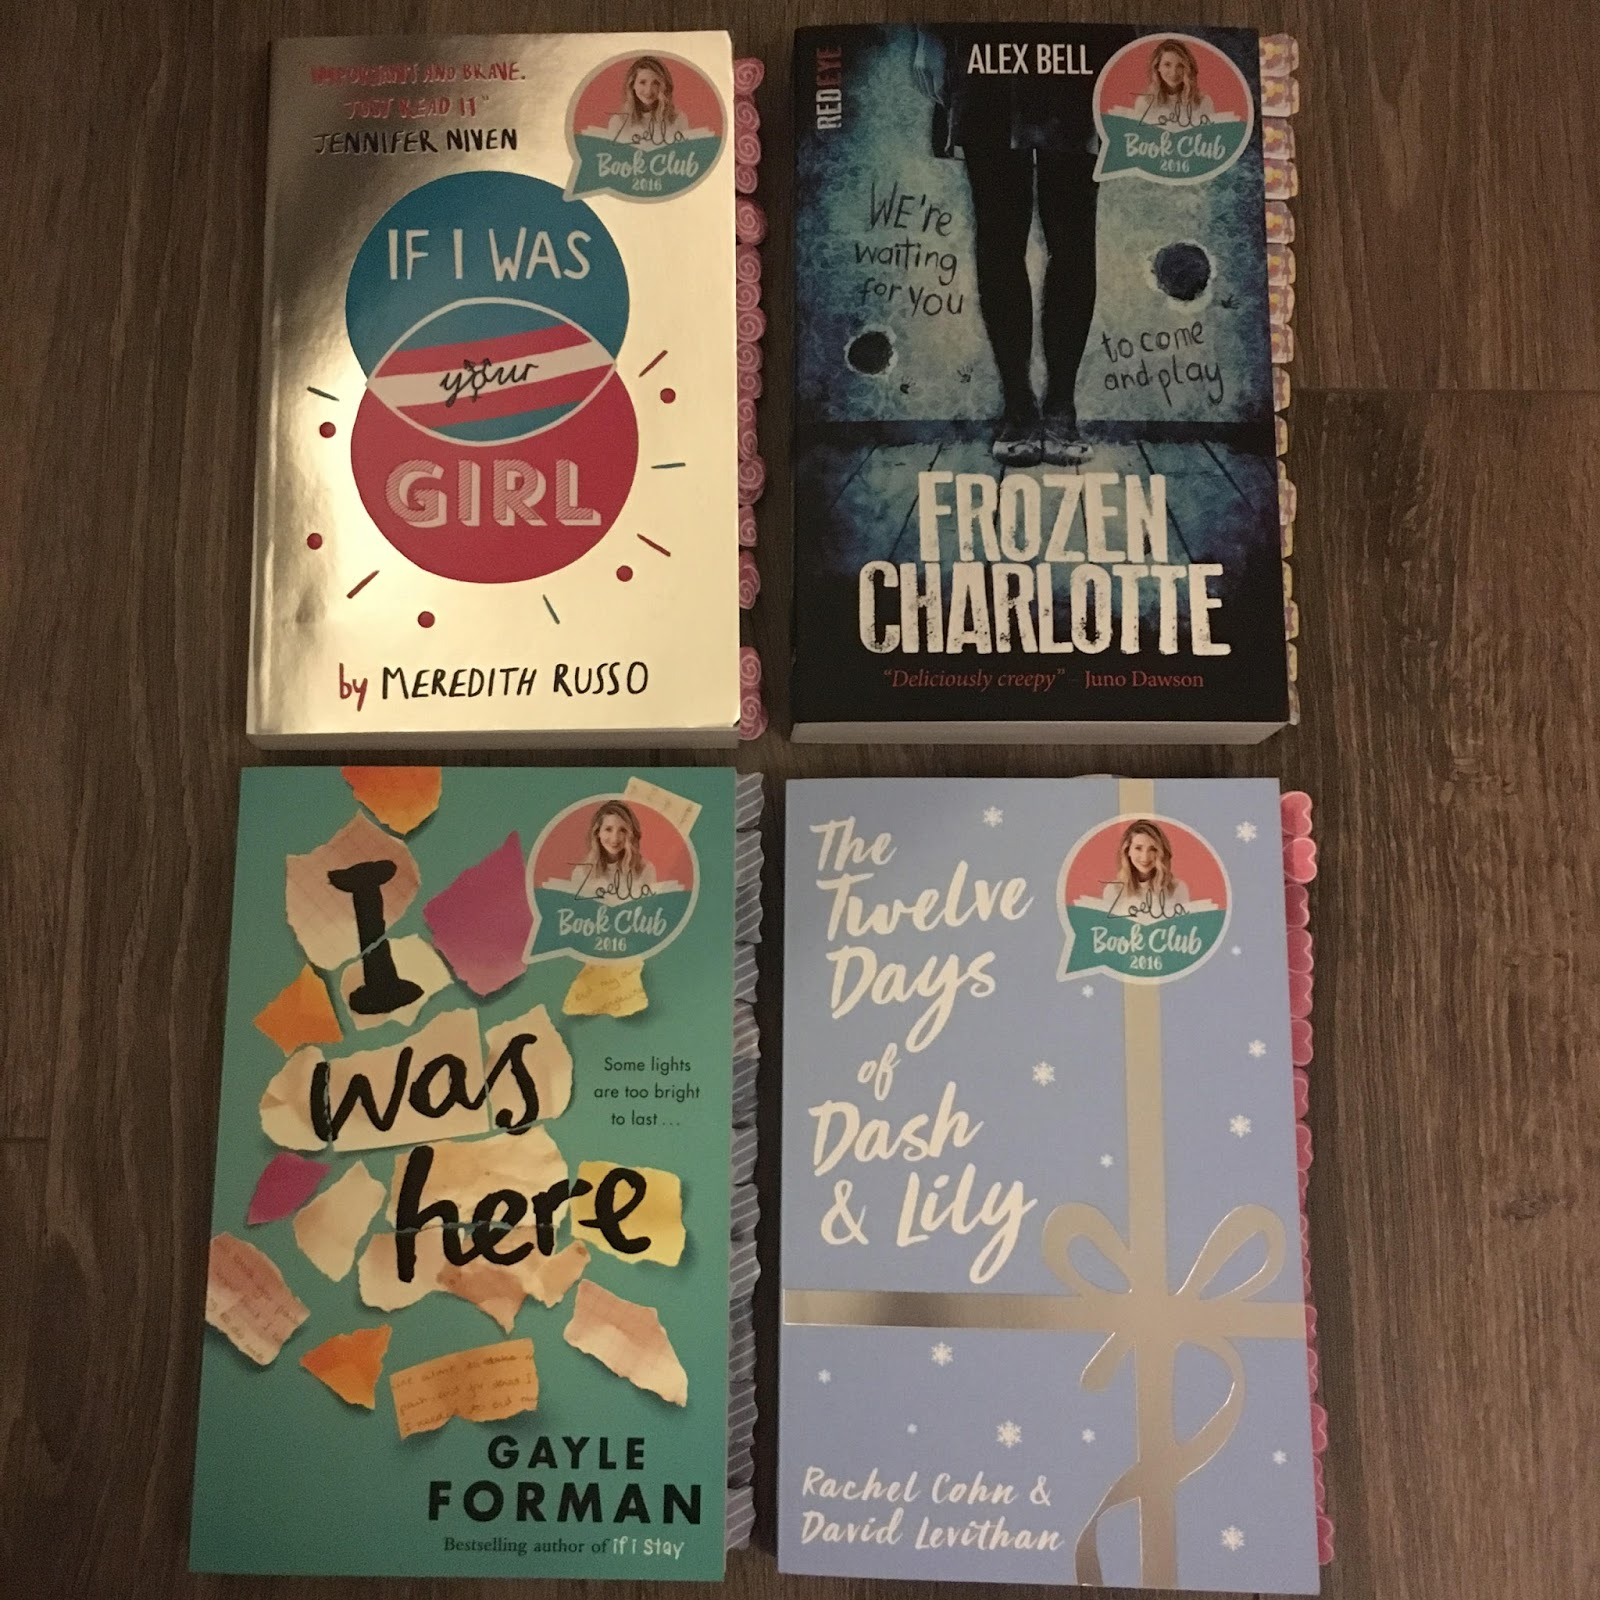 Whsmith zoella book club author interviews books 1 4 janay brazier as many of you reading this will probably already know i took part in the first whsmith zoella book club during the summer and fell in love with it solutioingenieria Choice Image